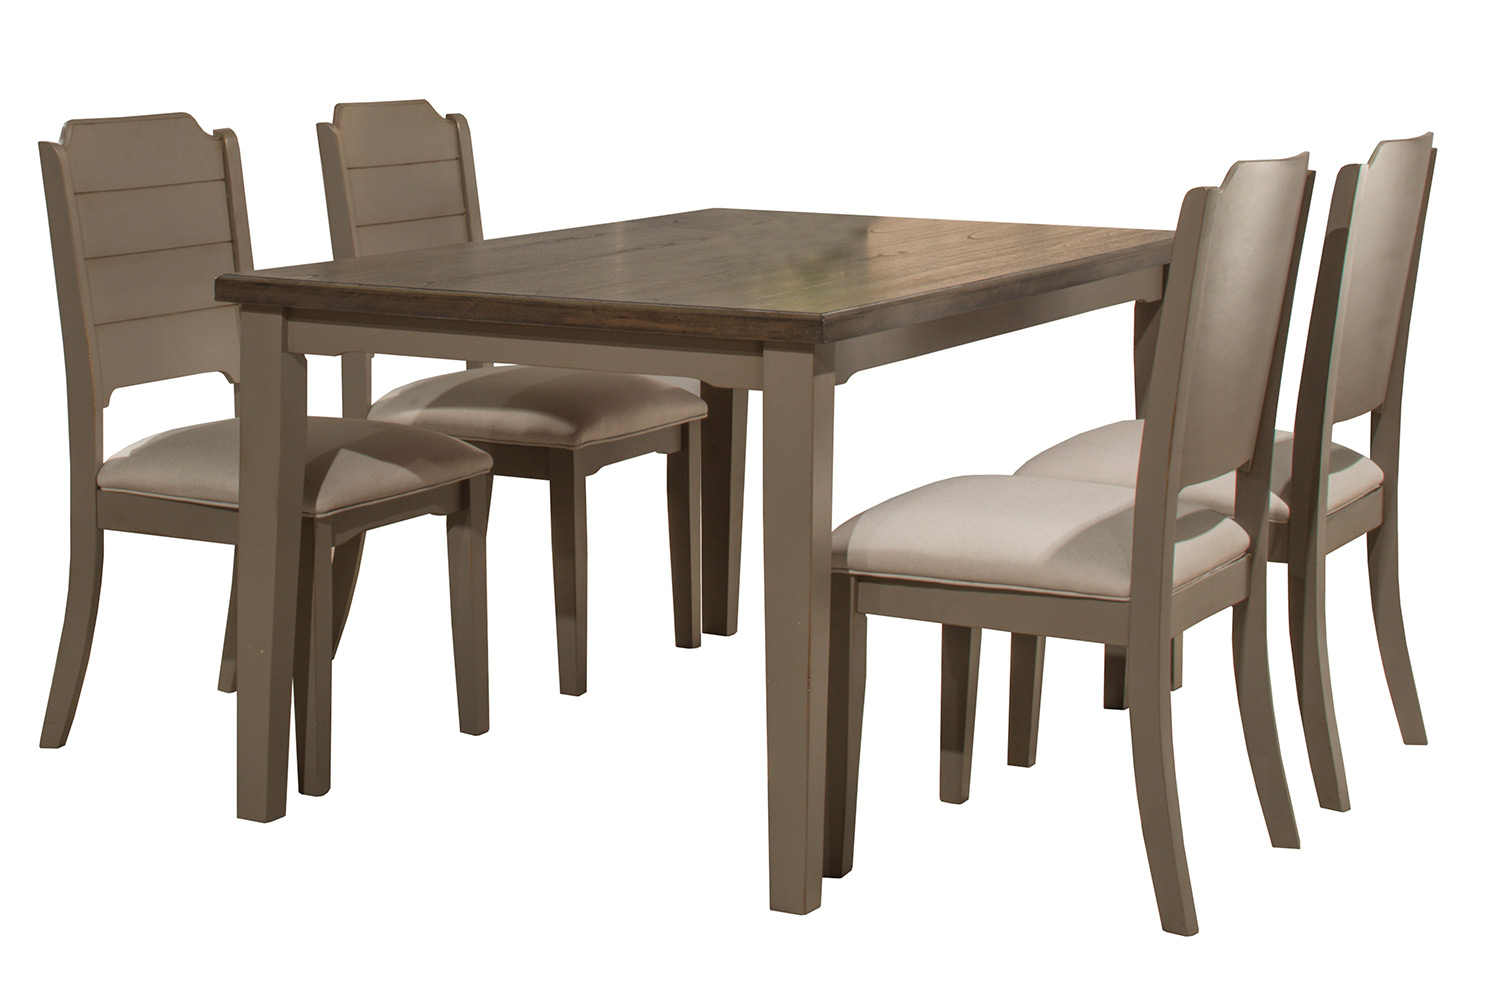 Hillsdale Clarion 5-Piece Rectangle Dining Set - Gray - Fog Fabric